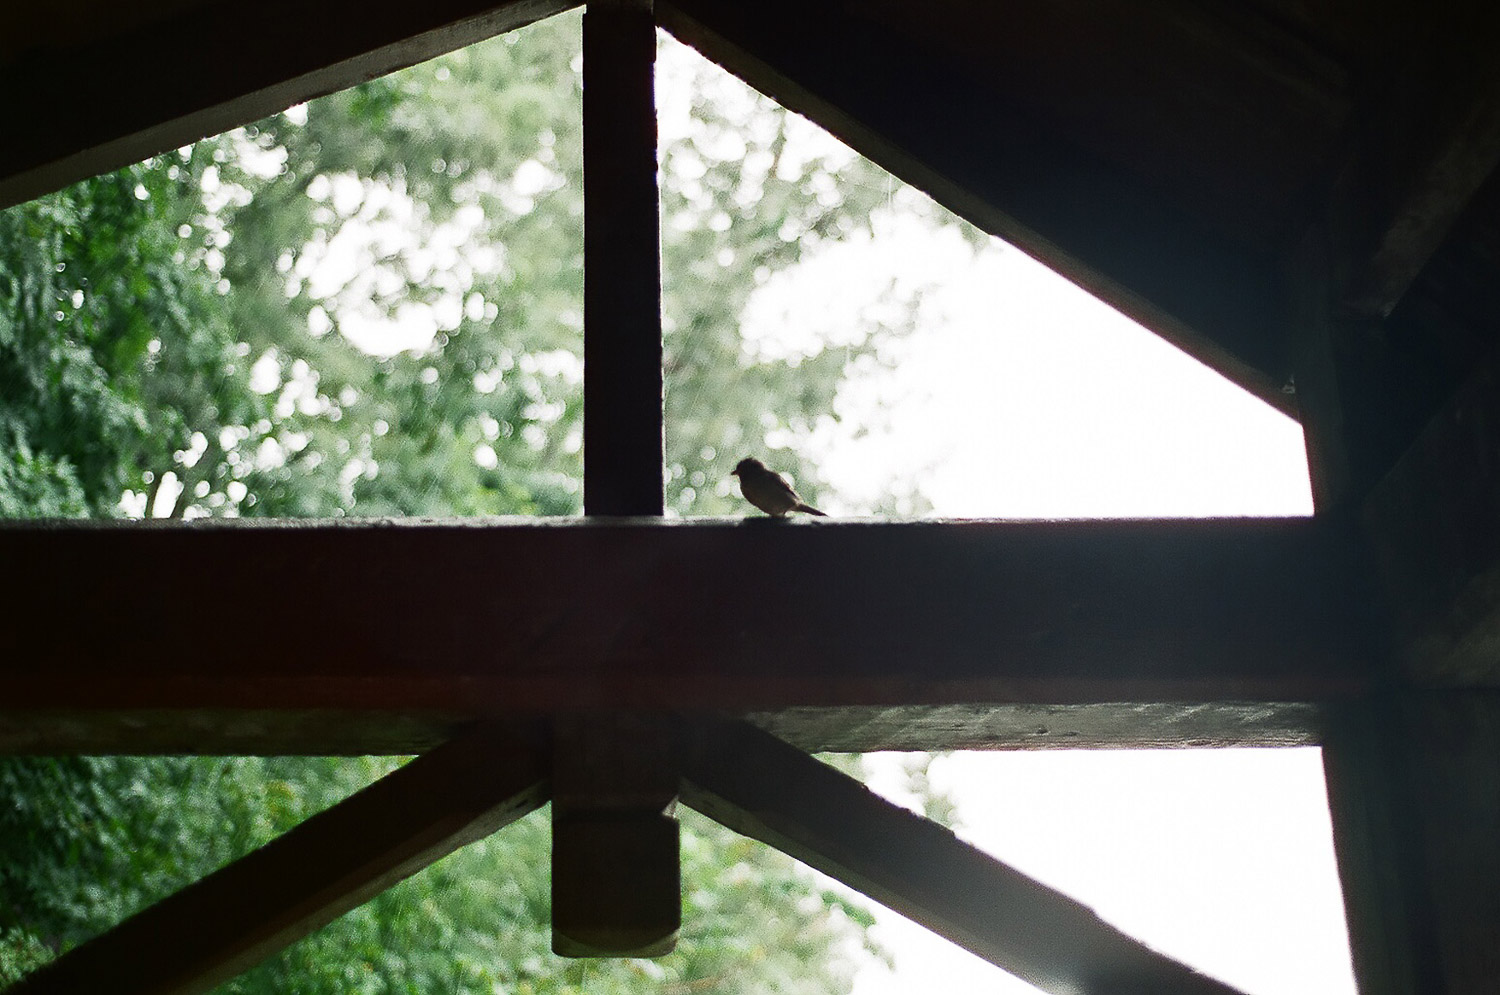 sparrow at elopement wedding day photo by wendy g photography